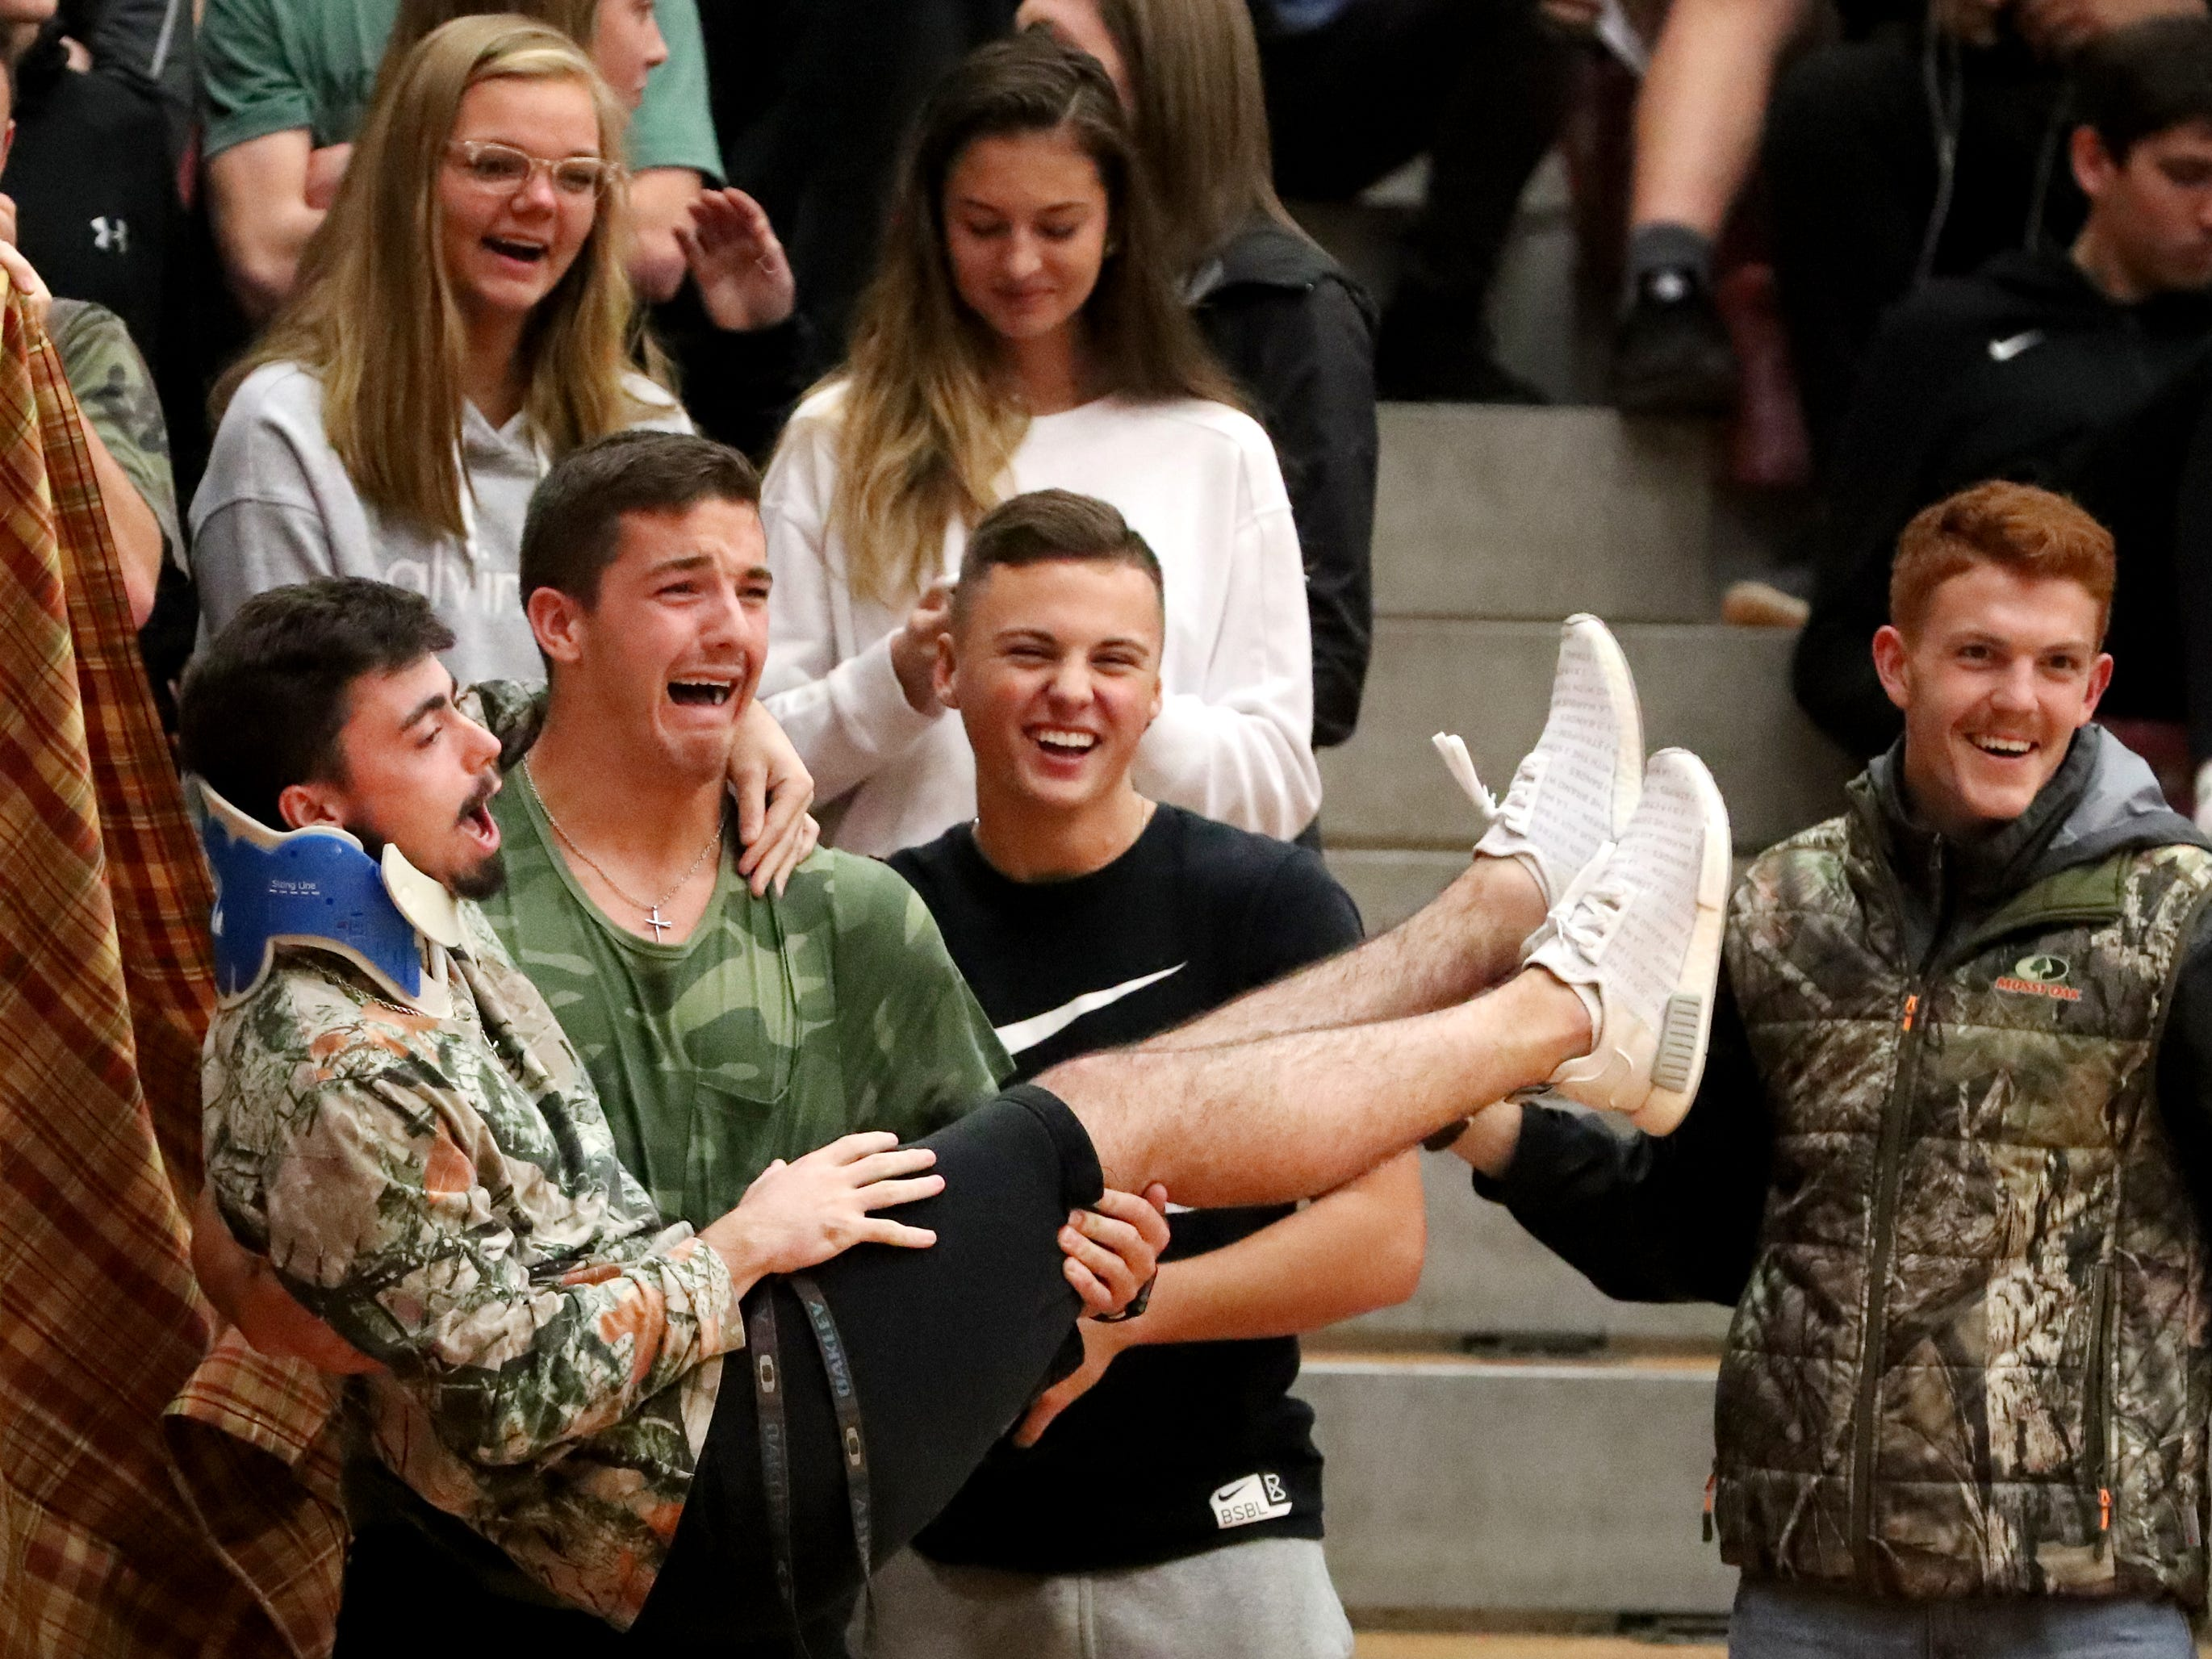 Riverdale fans try to distract a Lebanon free-throw shooter during the game at Riverdale on Friday, Nov. 30, 2018.